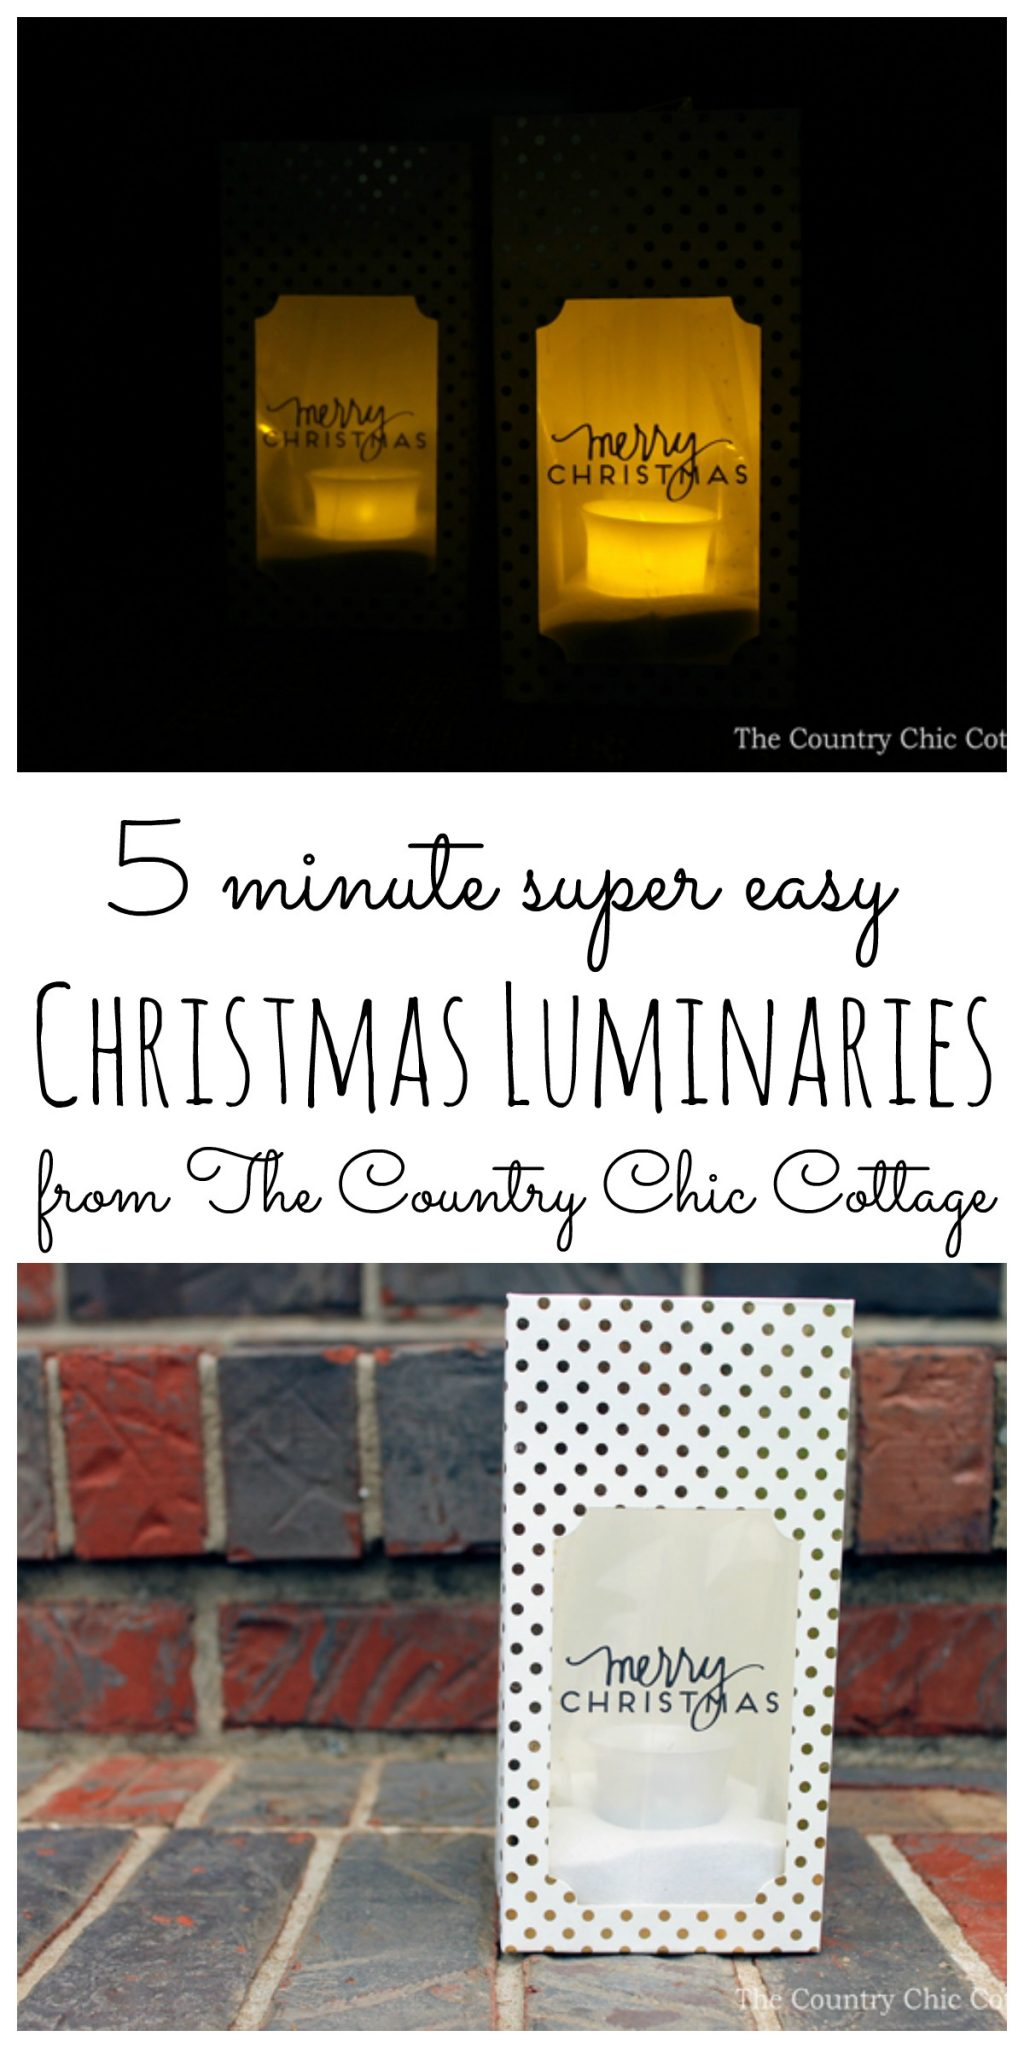 I love these Christmas luminaries and they are so easy to make! Going to put them on the porch this Christmas!